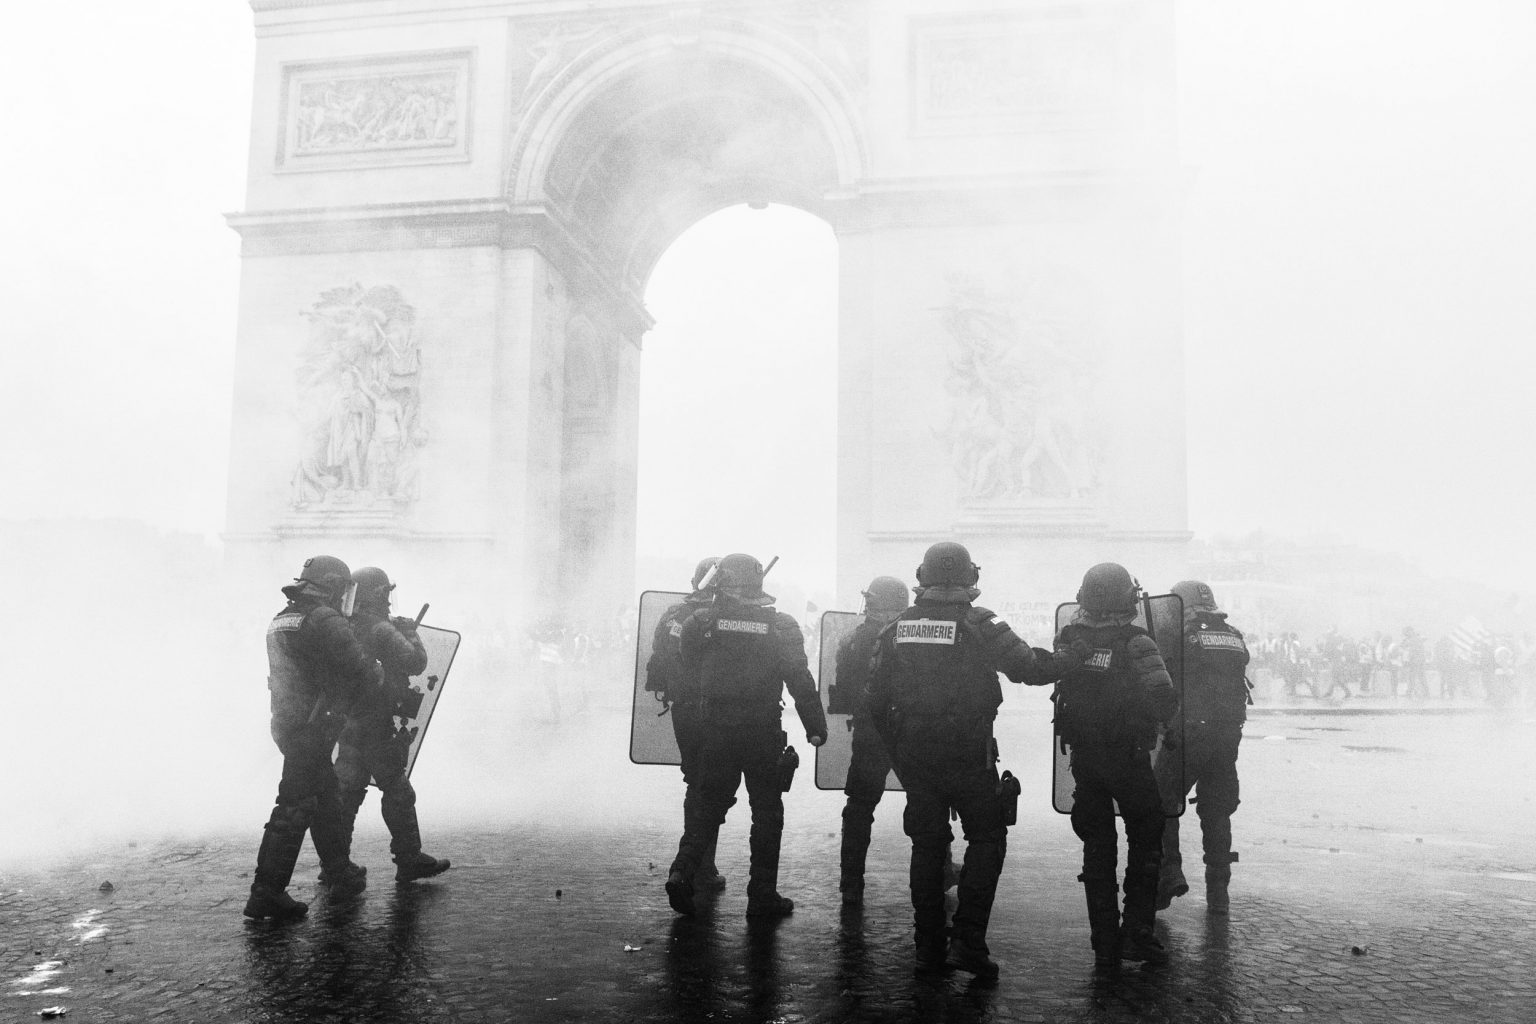 On Sunday, December 1st, there were major clashes in Paris. Hostility began at 8:30 am and diverged in the different axes of the triumphal arch. Barricades, fires, breakages of all kinds, Paris has witnessed a rare degree of violence and insurrection.